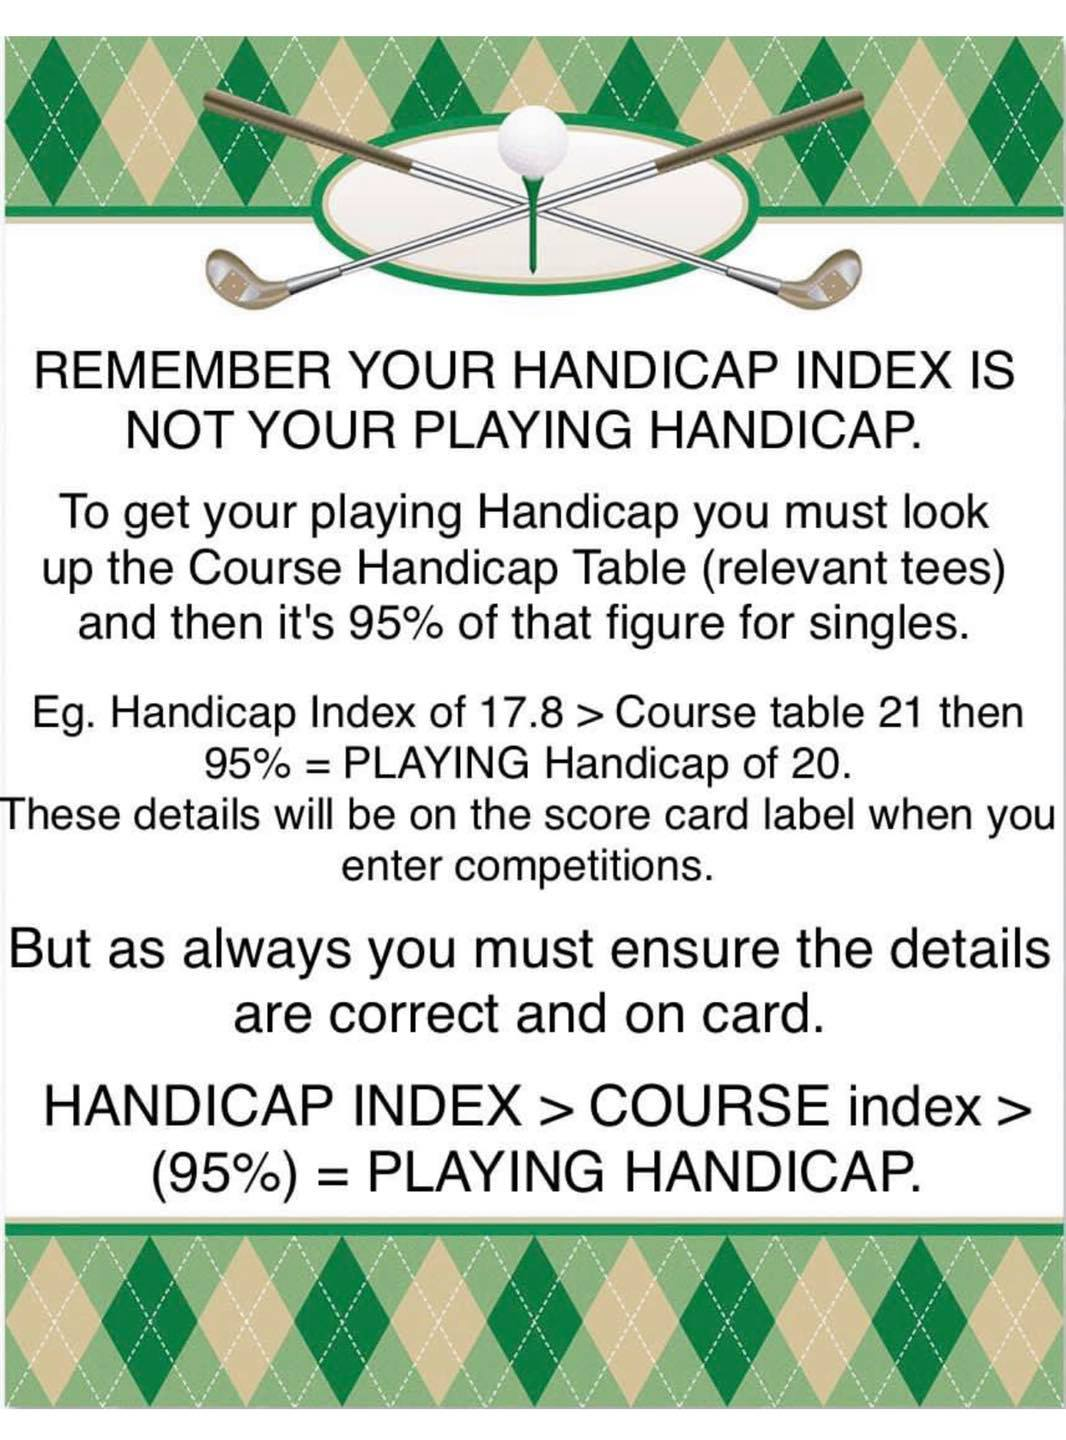 Handicap_index